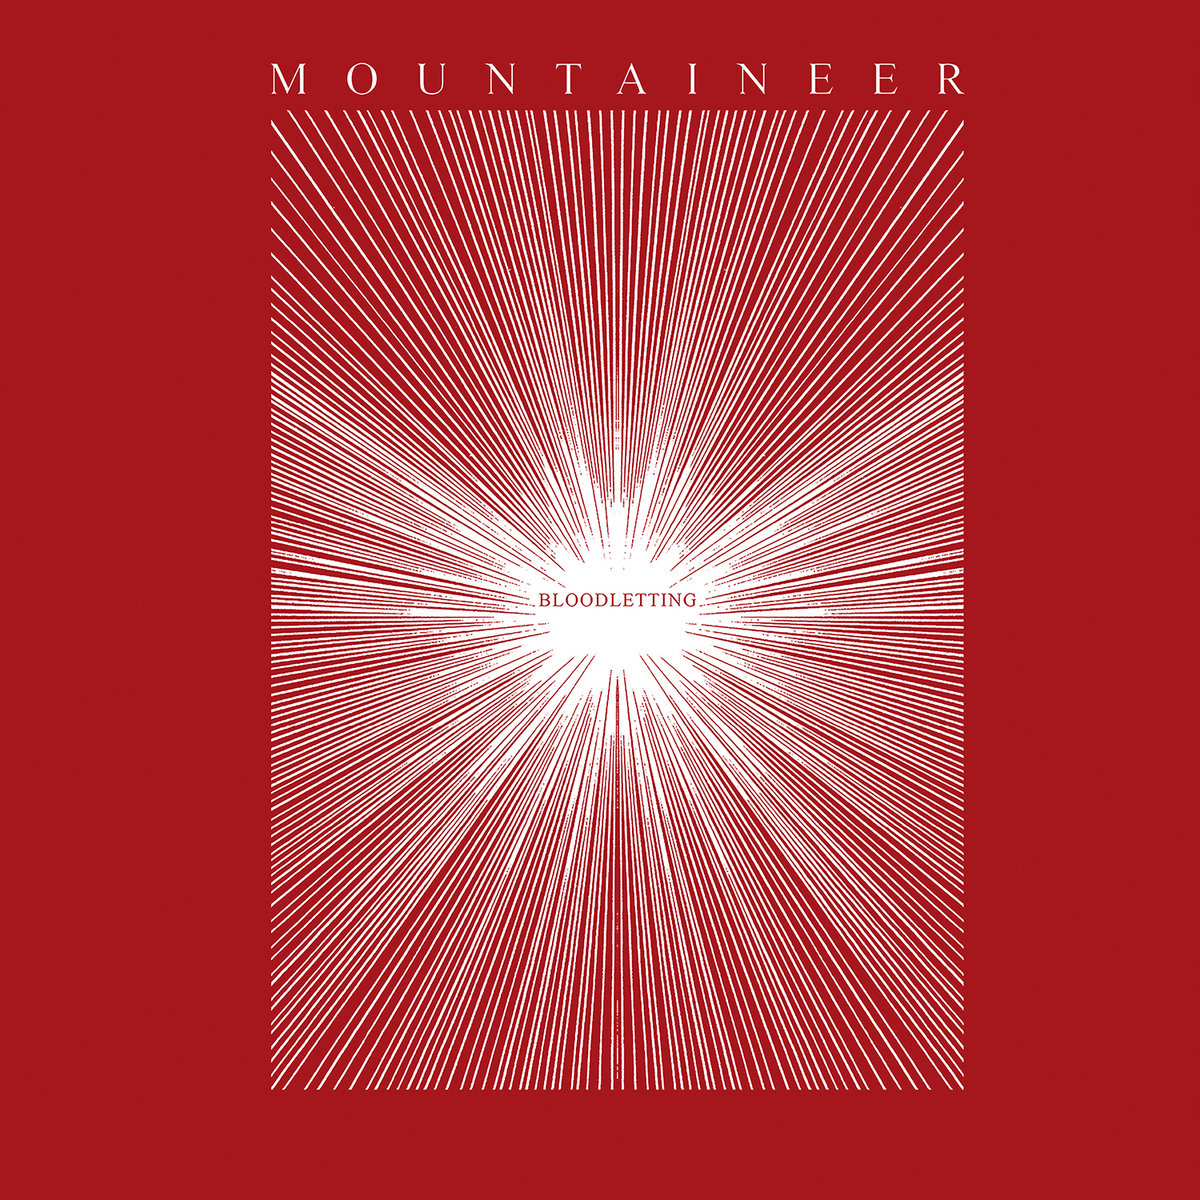 MOUNTAINEER dévoile la nouvelle chanson « The Weeds I Have Tended »